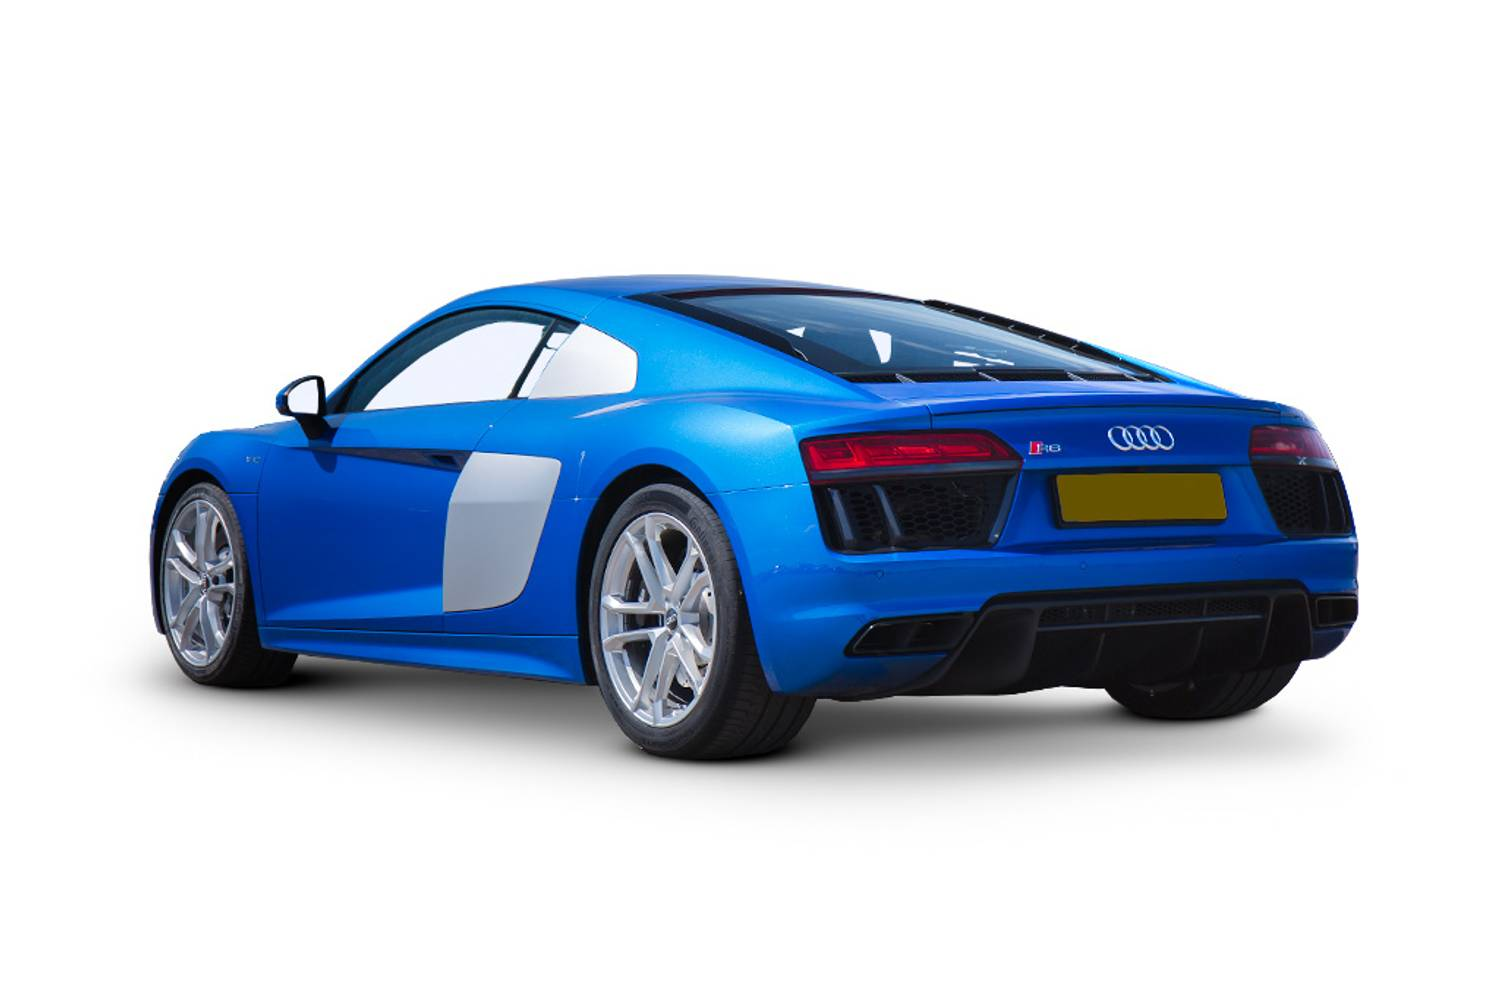 New Audi R8 Coupe Special Editions 5 2 Fsi V10 Rear Wheel